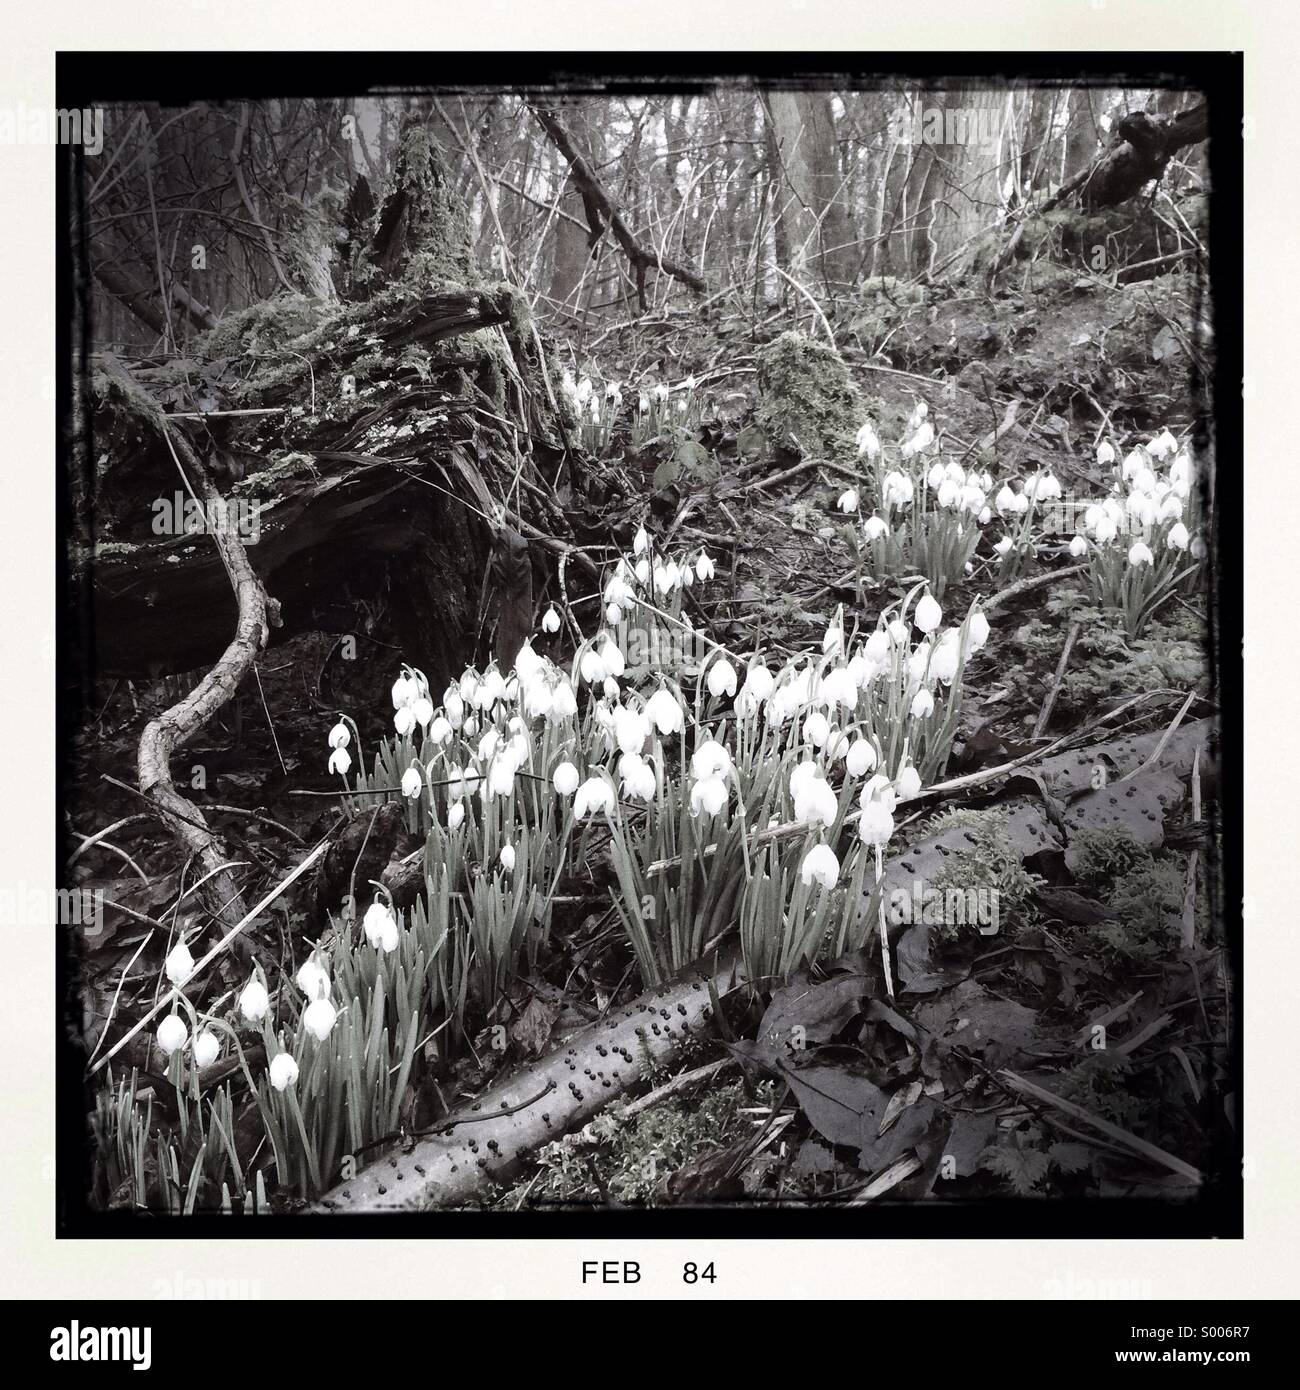 Snowdrops native woodlands U.K. - Stock Image